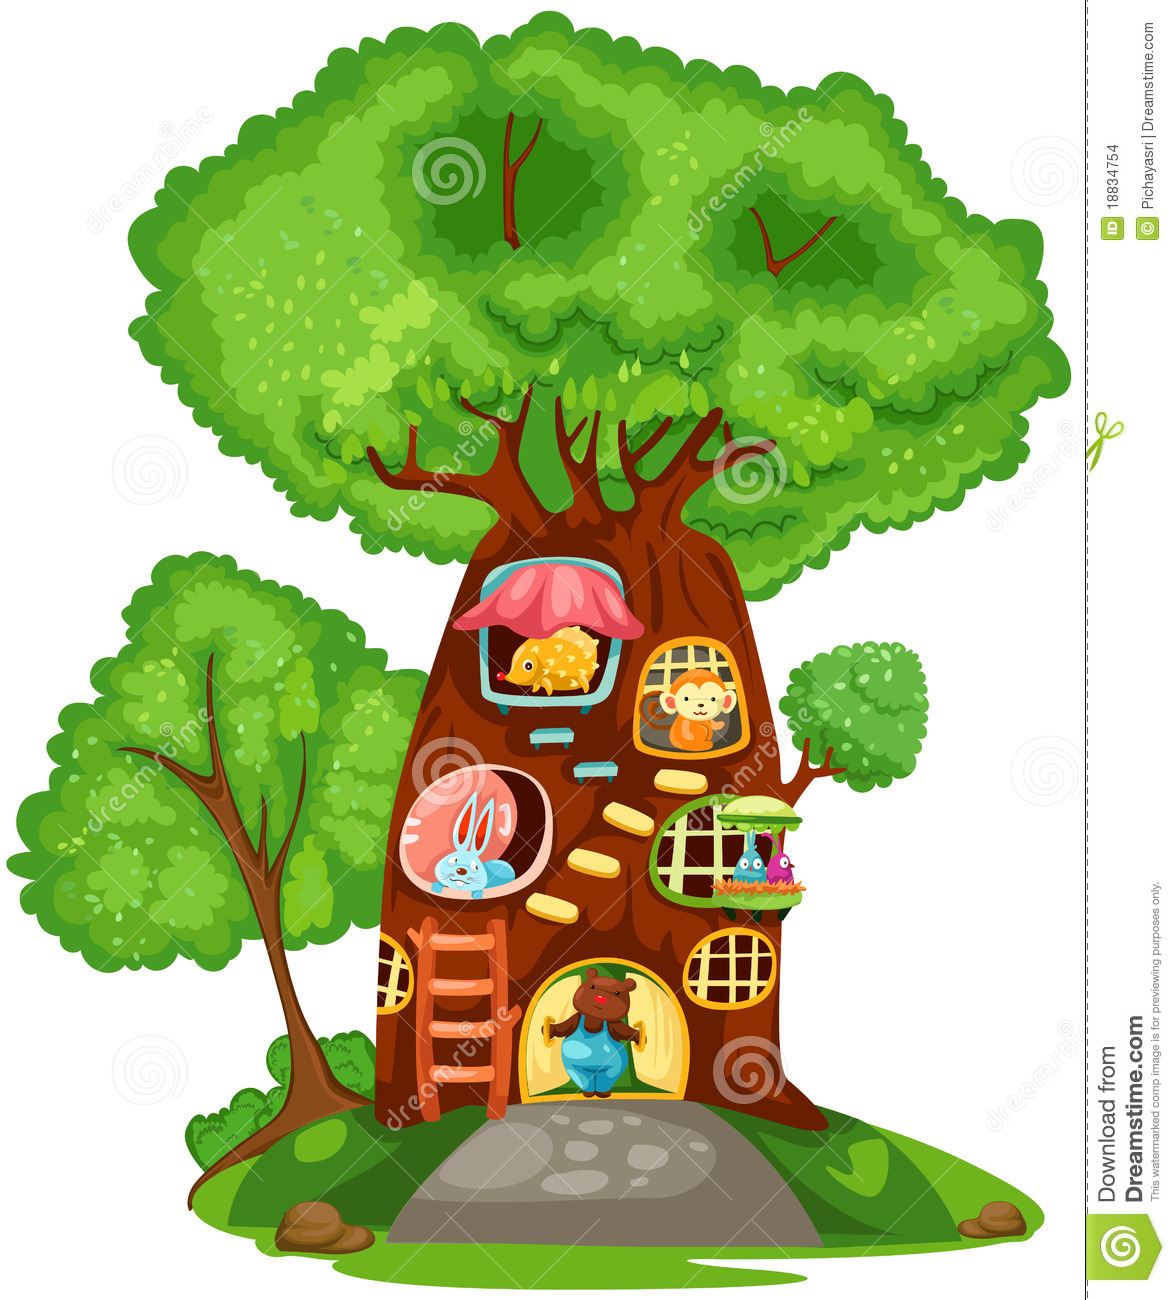 Kids tree house clipart.